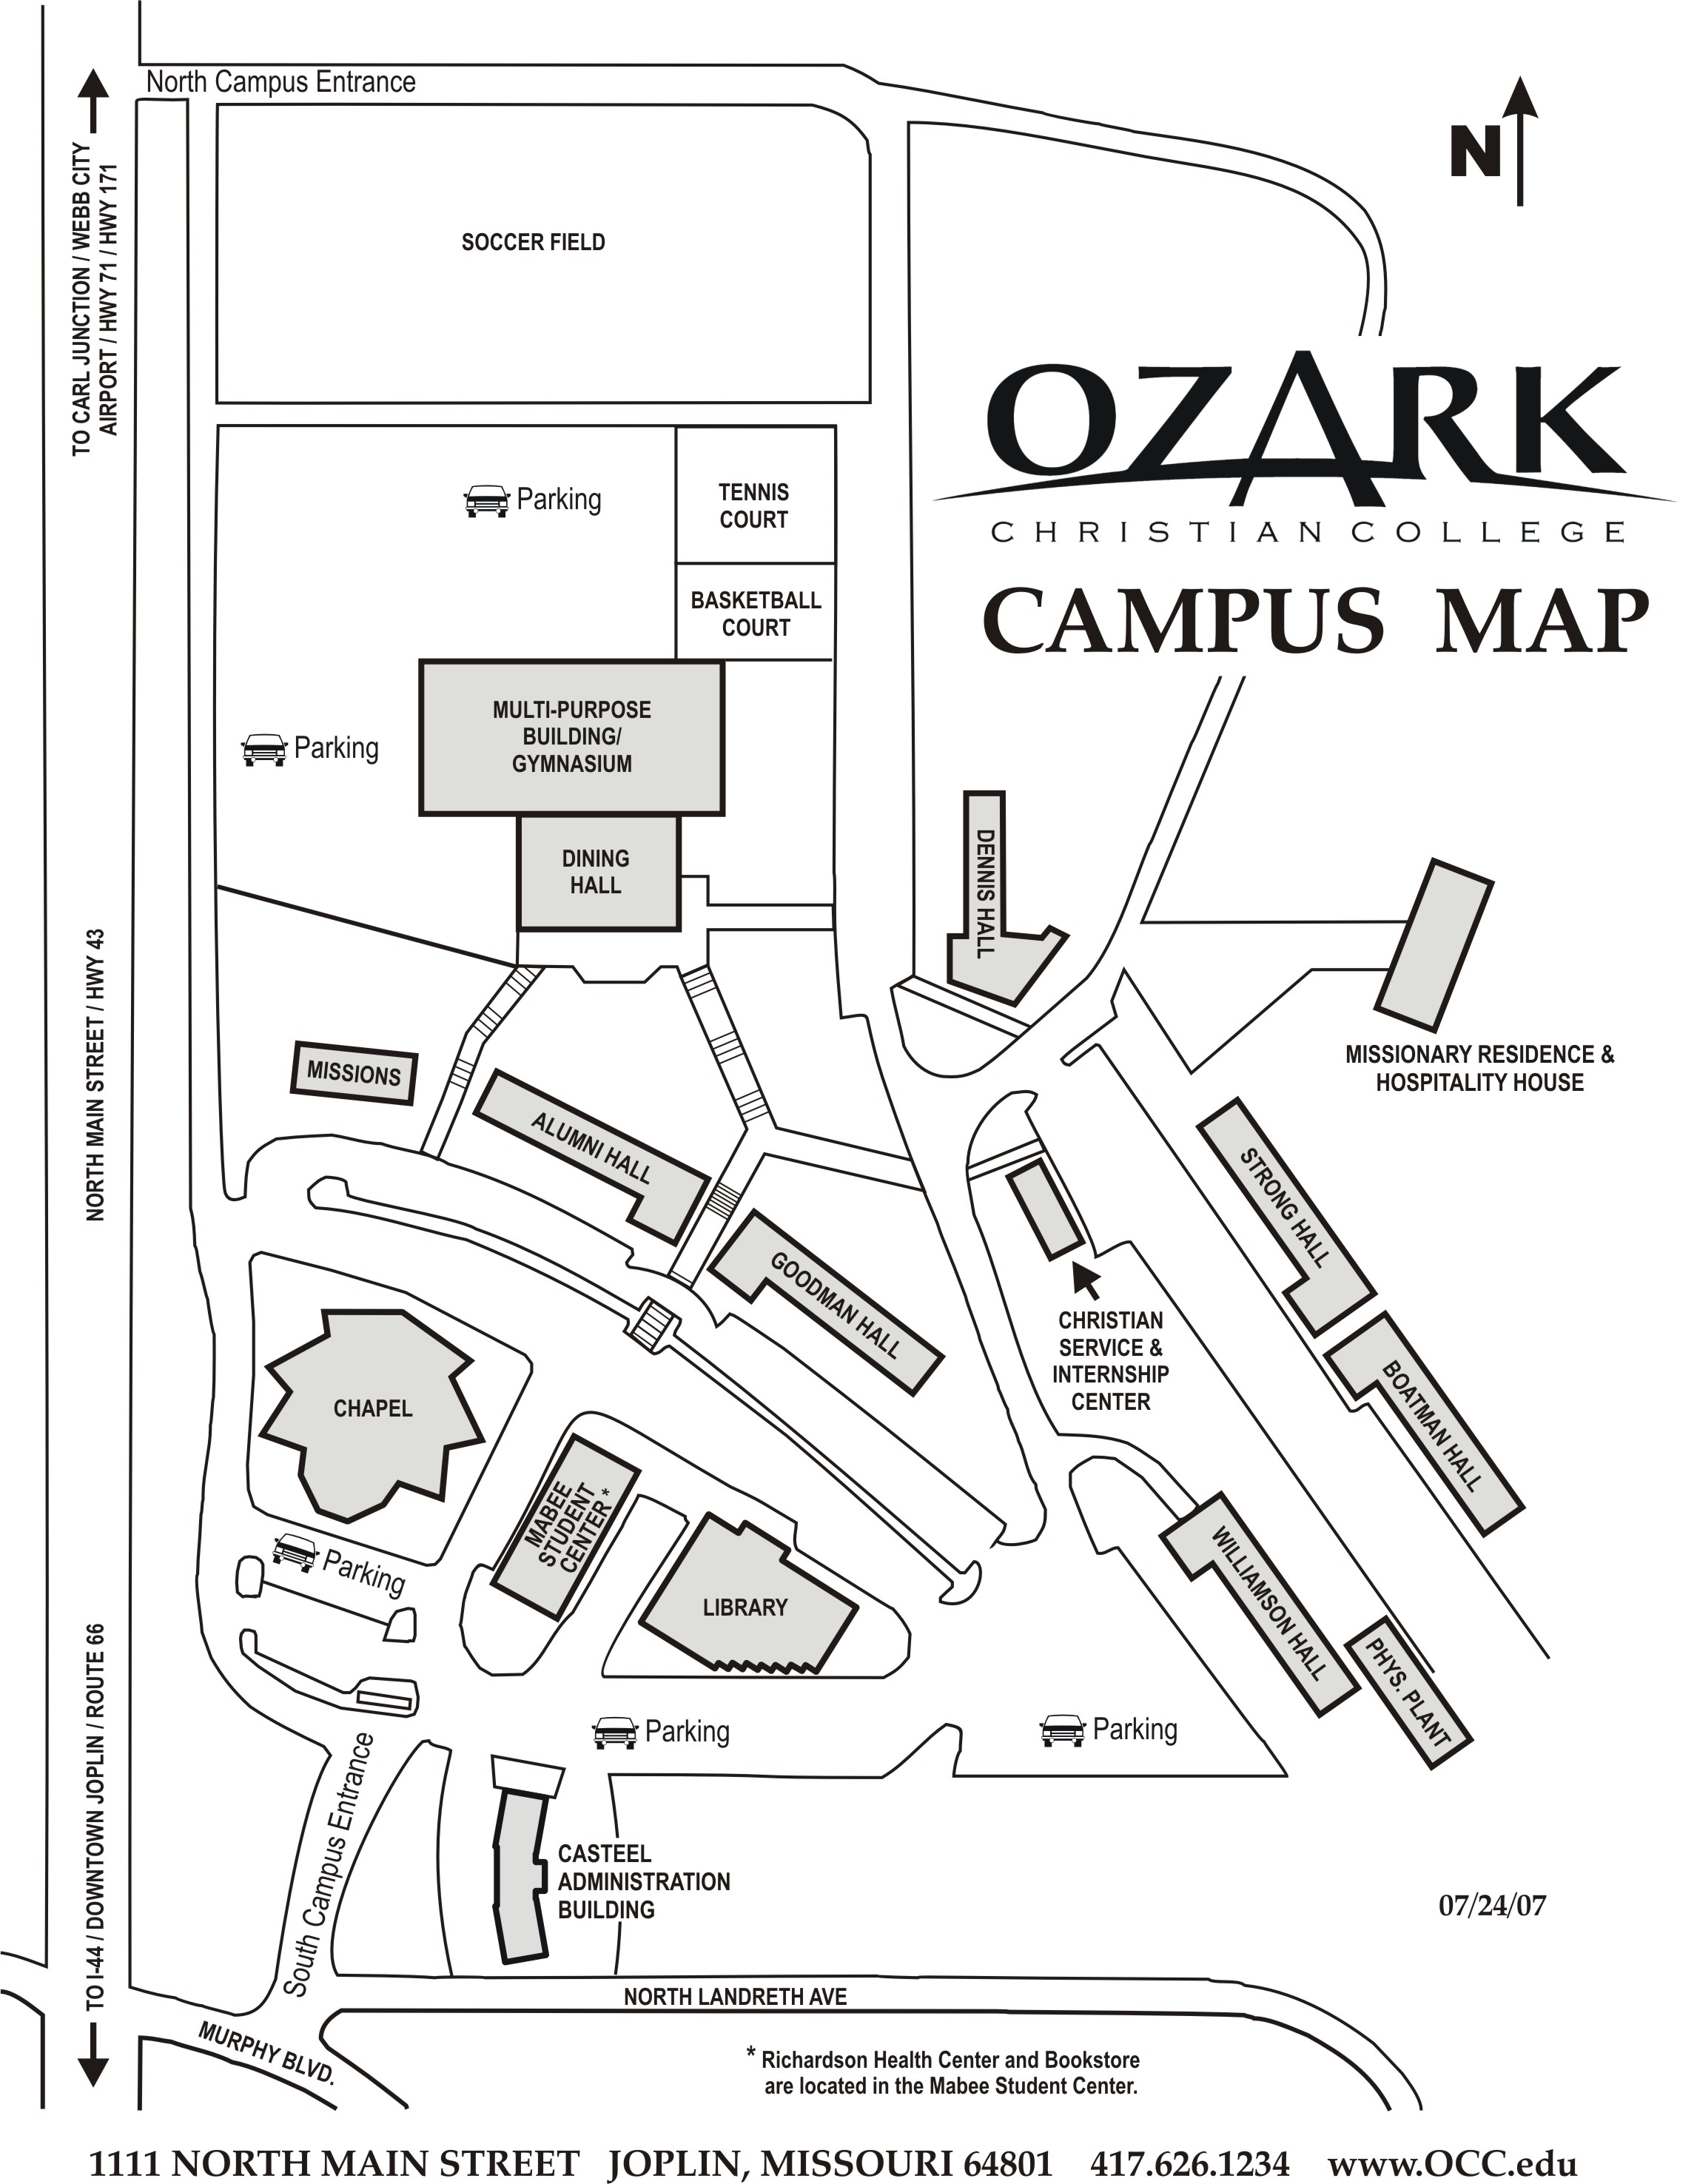 occ map campus with Ozark Christian College Map on Syracuse University C us Map also First Look At The Crystal Cathedrals Massive Catholic Makeover in addition Binghamton University College 13 likewise Orangecoast in addition University Of Illinois Hospital Chicago 6430553.